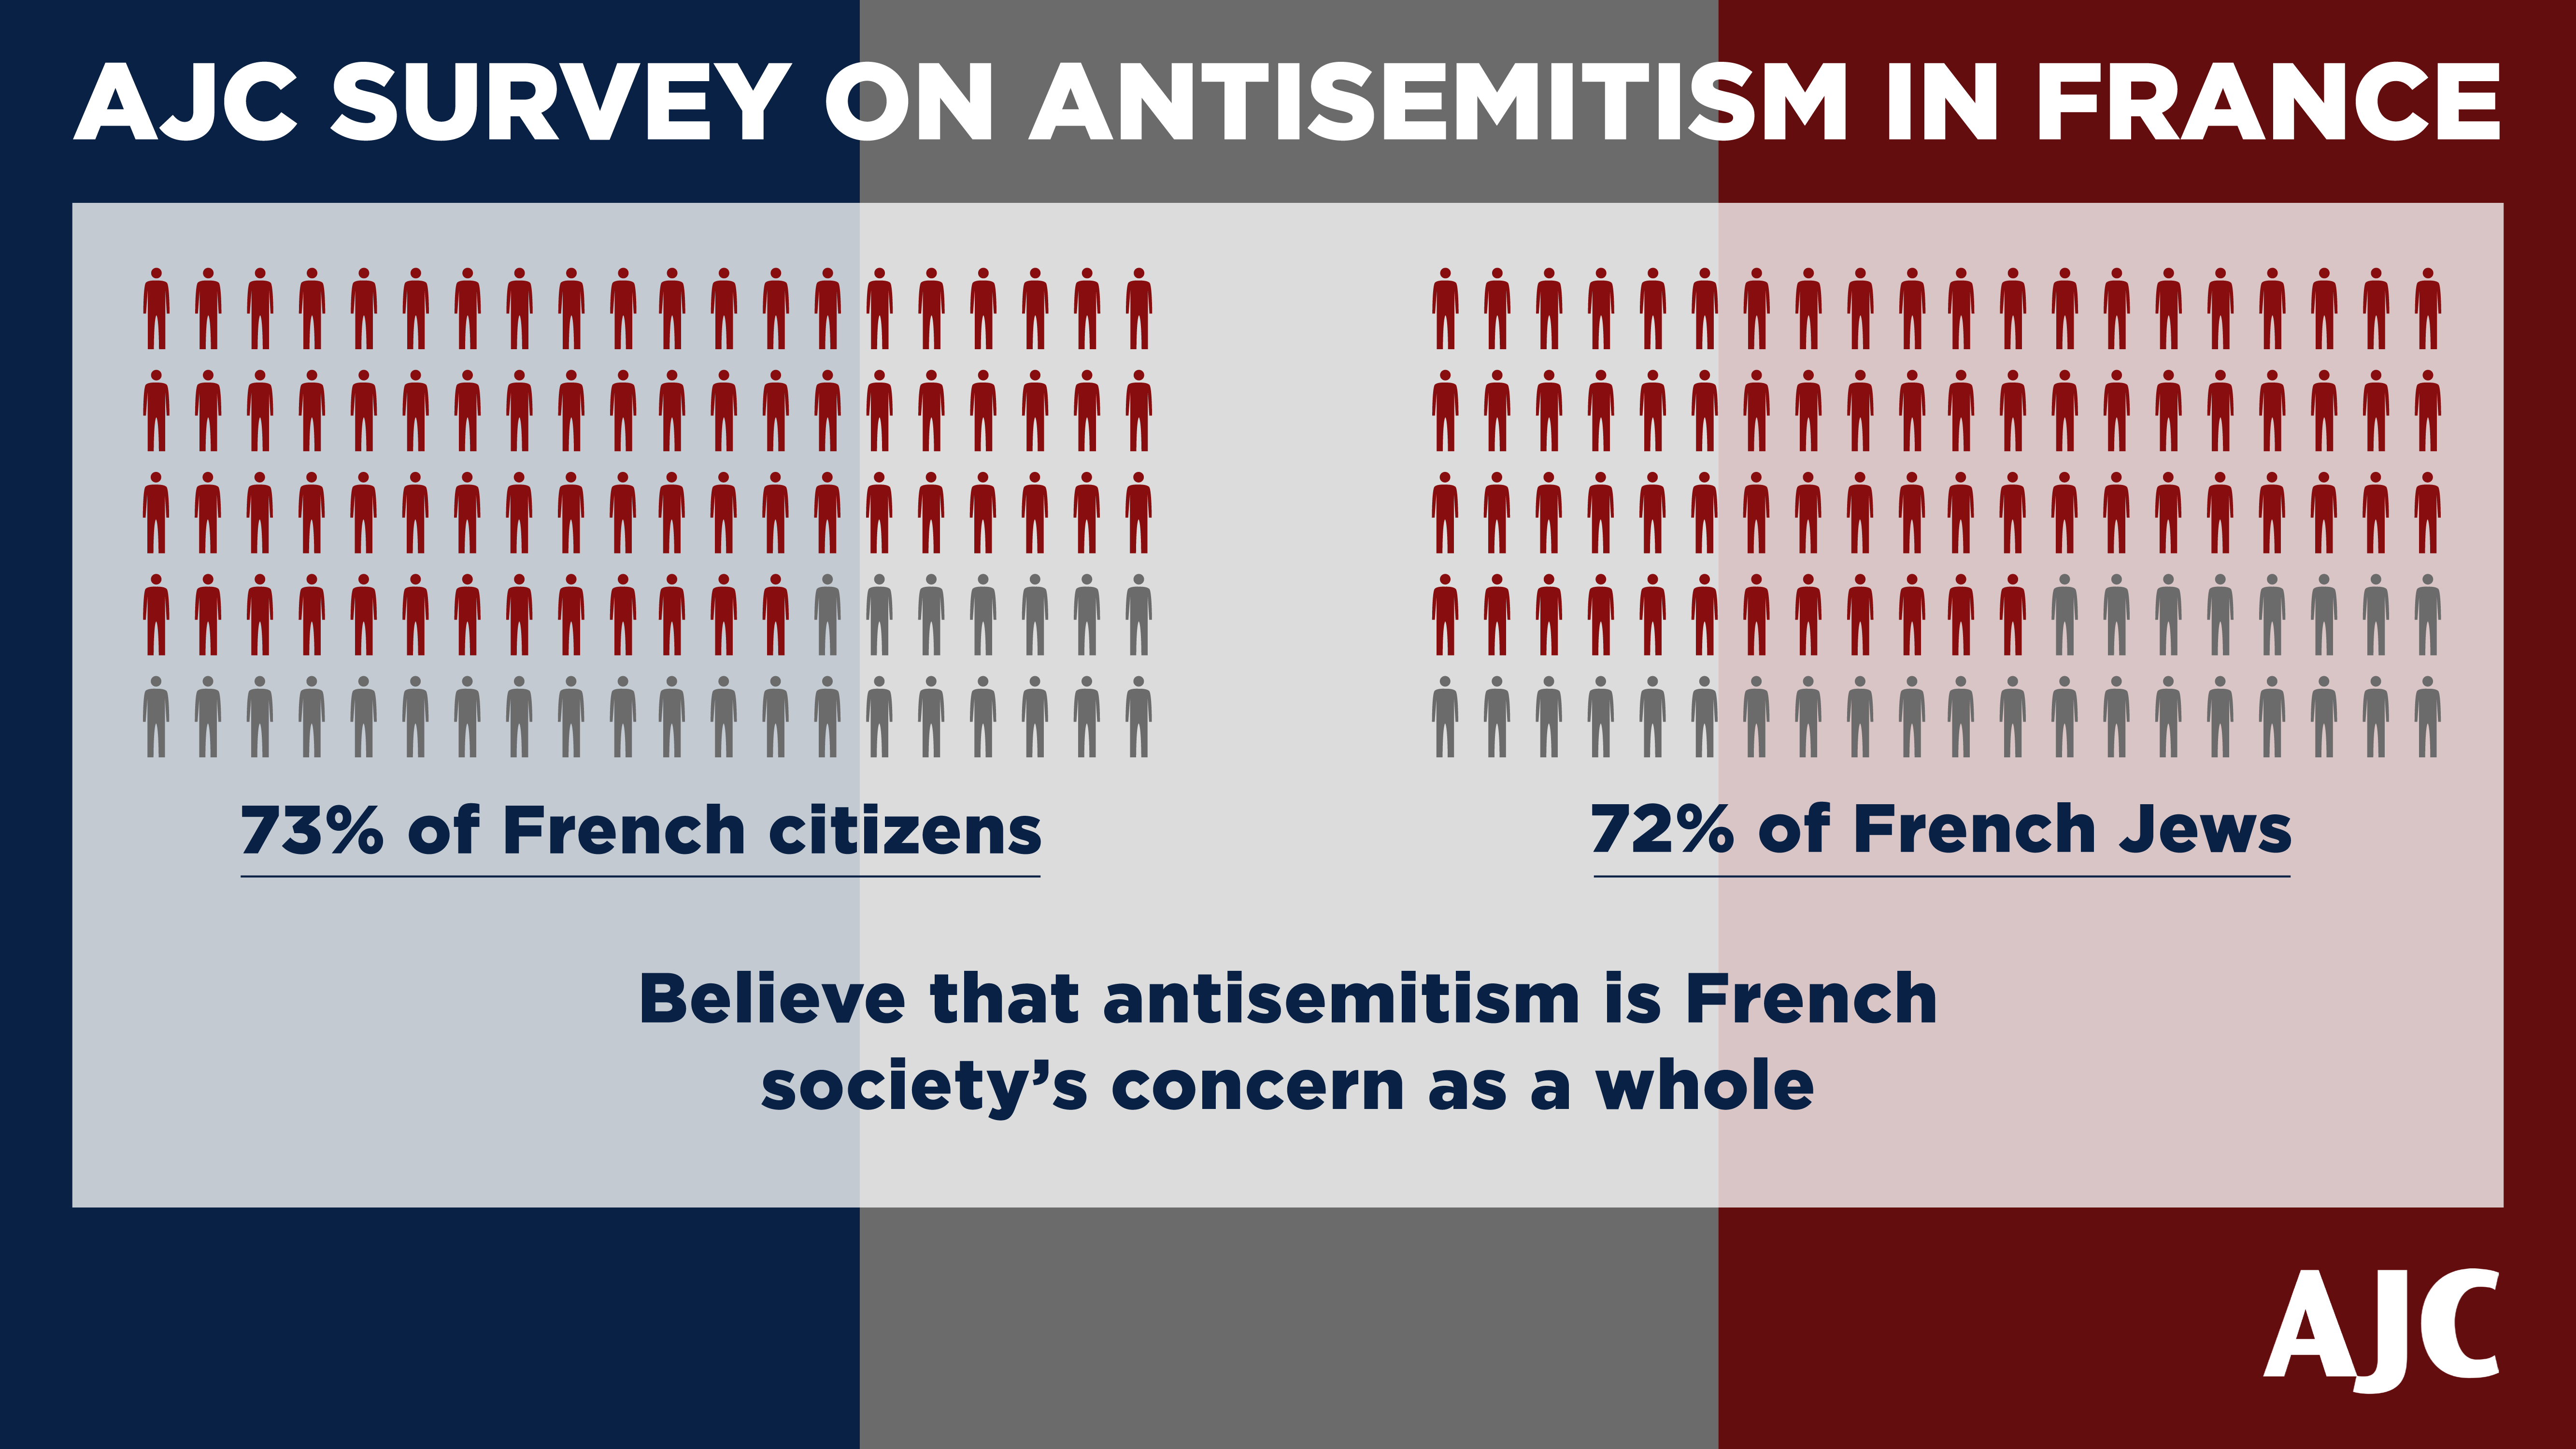 AJC Paris Survey Graphic Showing 73% of French Public and 72% of French Jews believe antisemitism affects all of French society